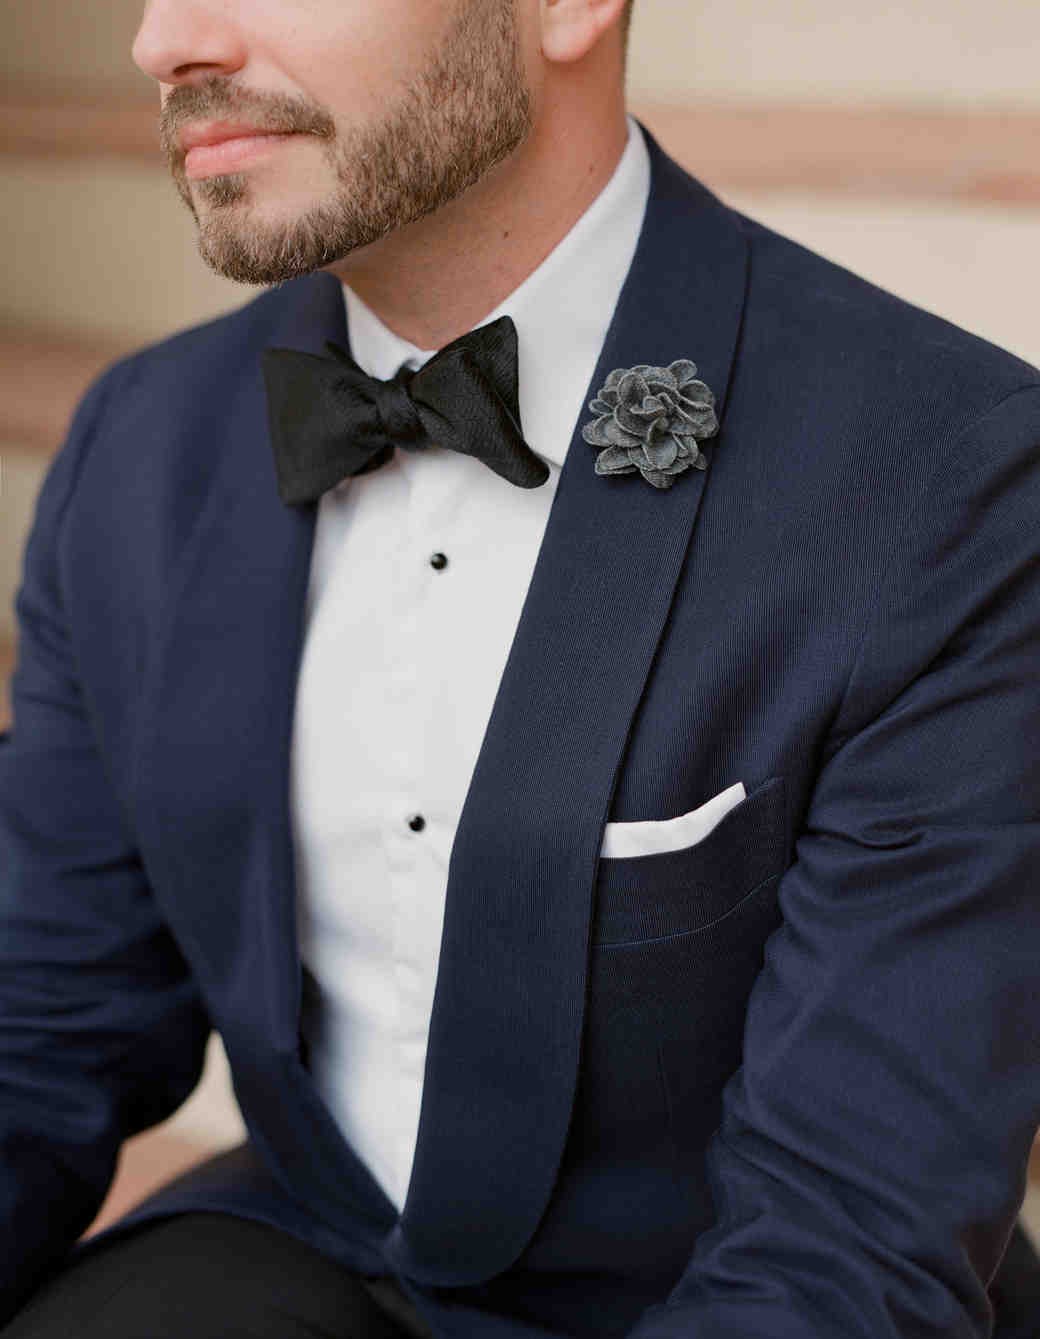 the-dapper-diplomat-timeless-fashion-tips-1016.jpg (skyword:344285)